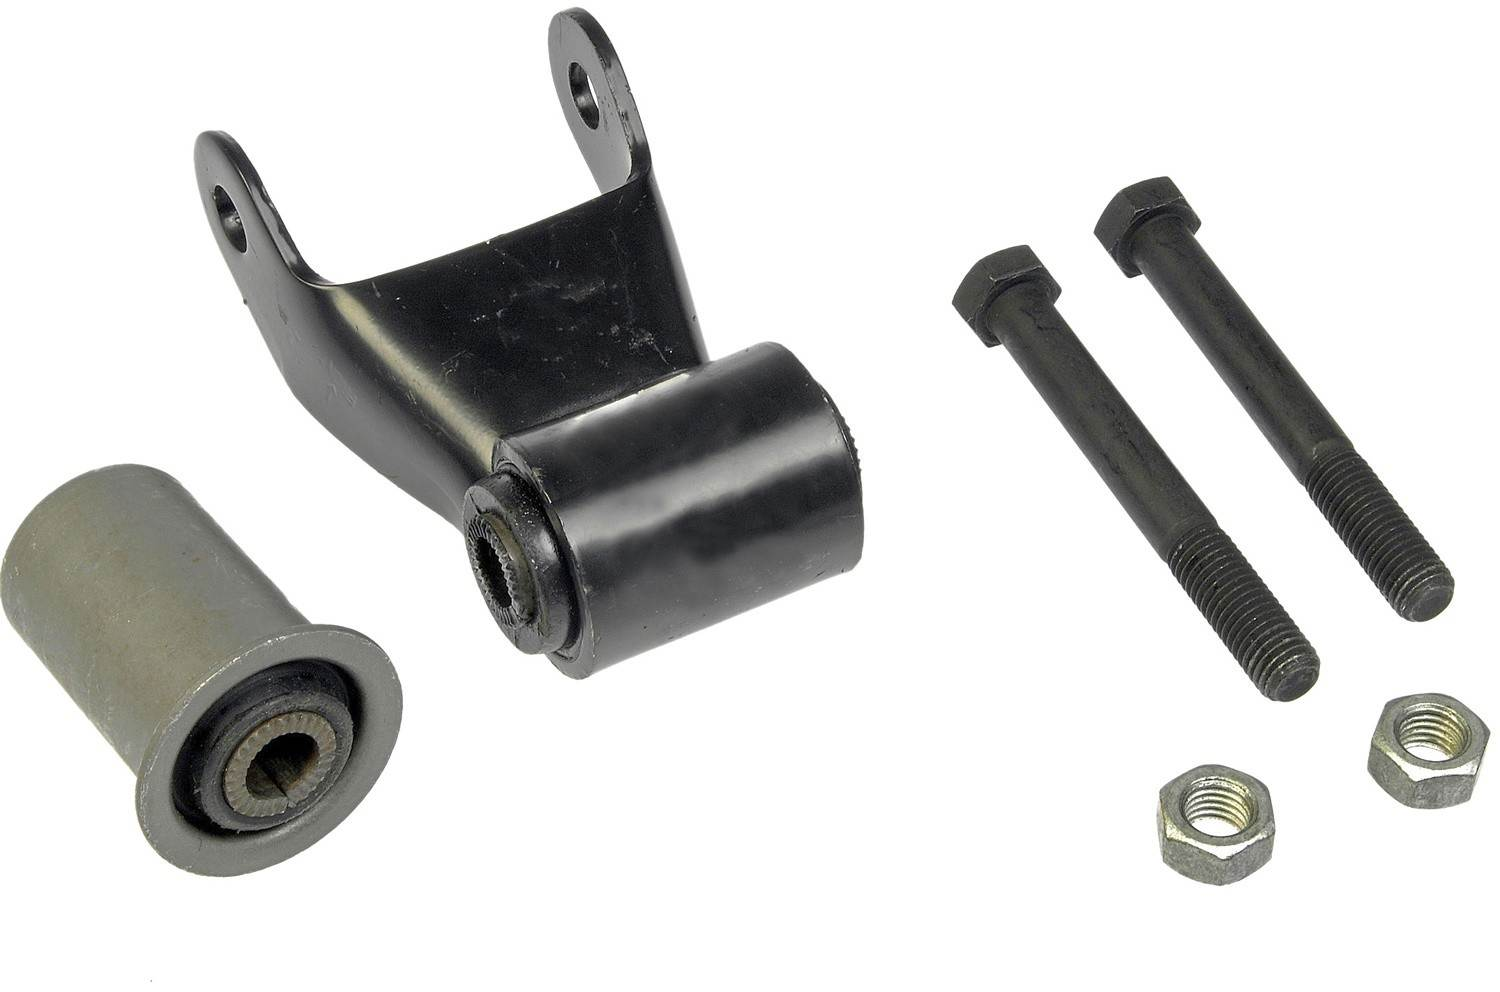 DORMAN OE SOLUTIONS - Leaf Spring Shackle - DRE 722-006